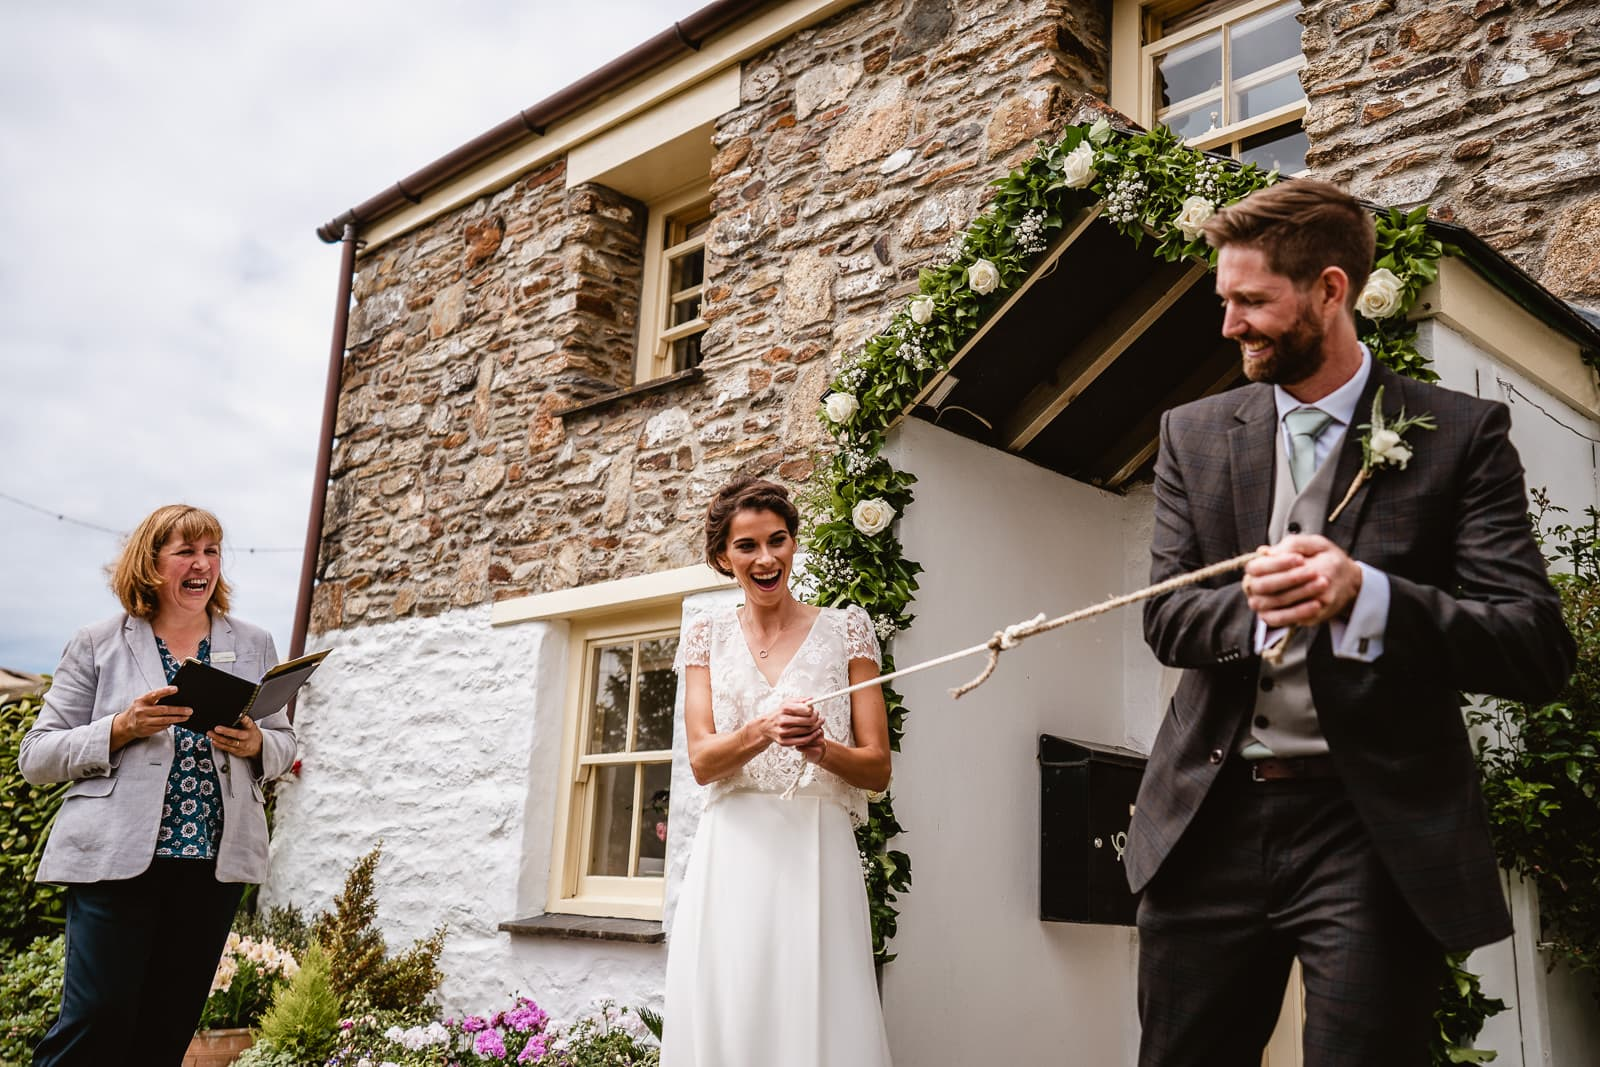 Cornish Celebrant led service at a garden wedding in Cornwall